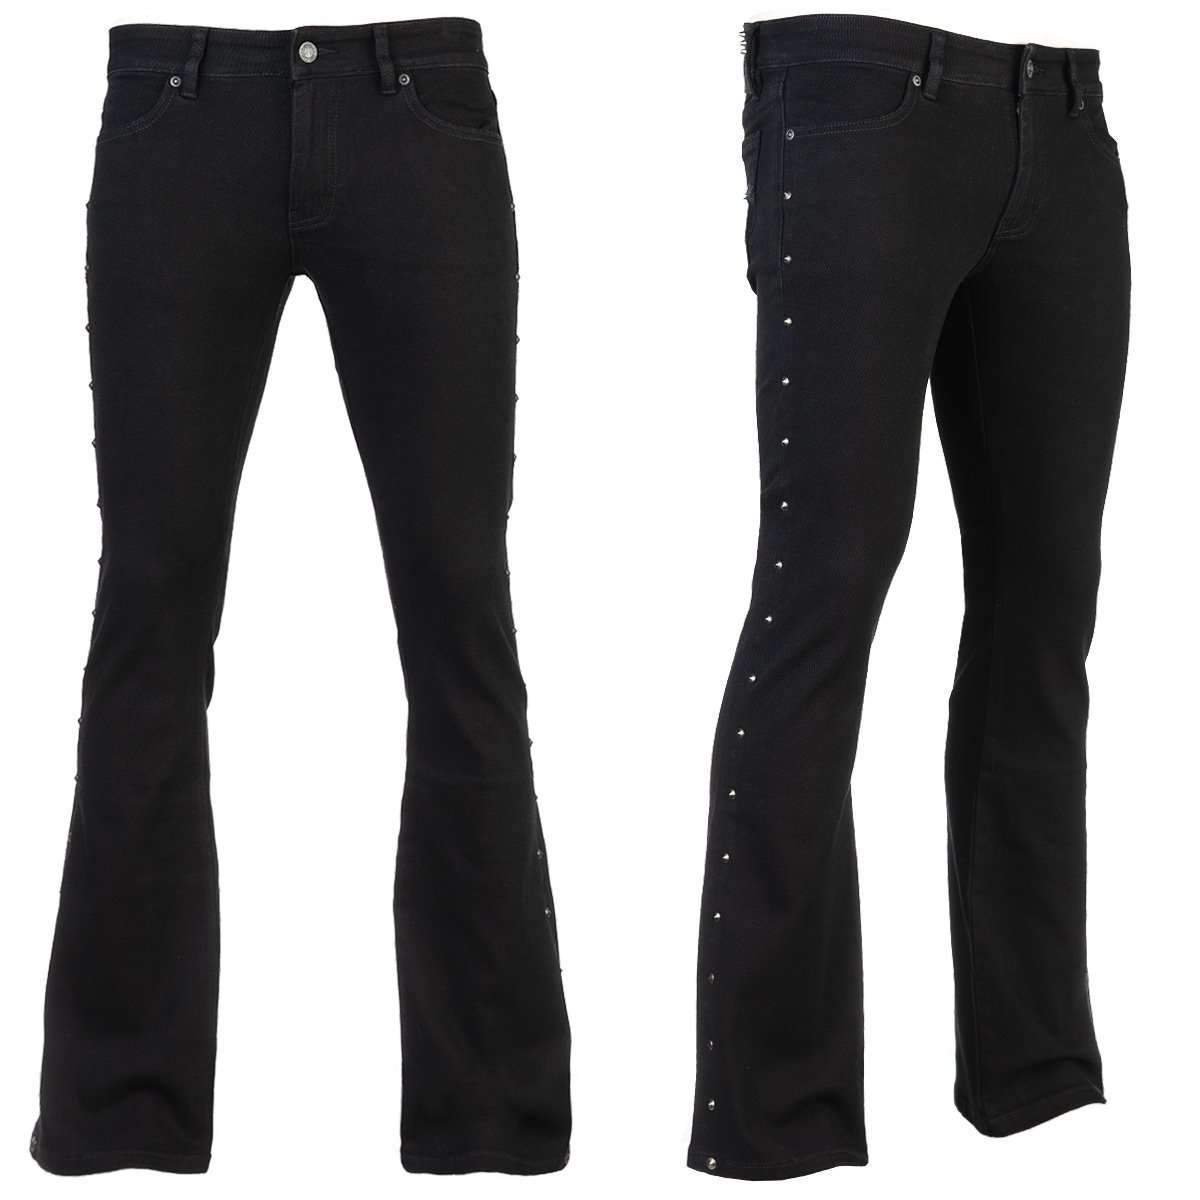 Wornstar GAUNTLET STUDDED BLACK SLIM FIT Jeans